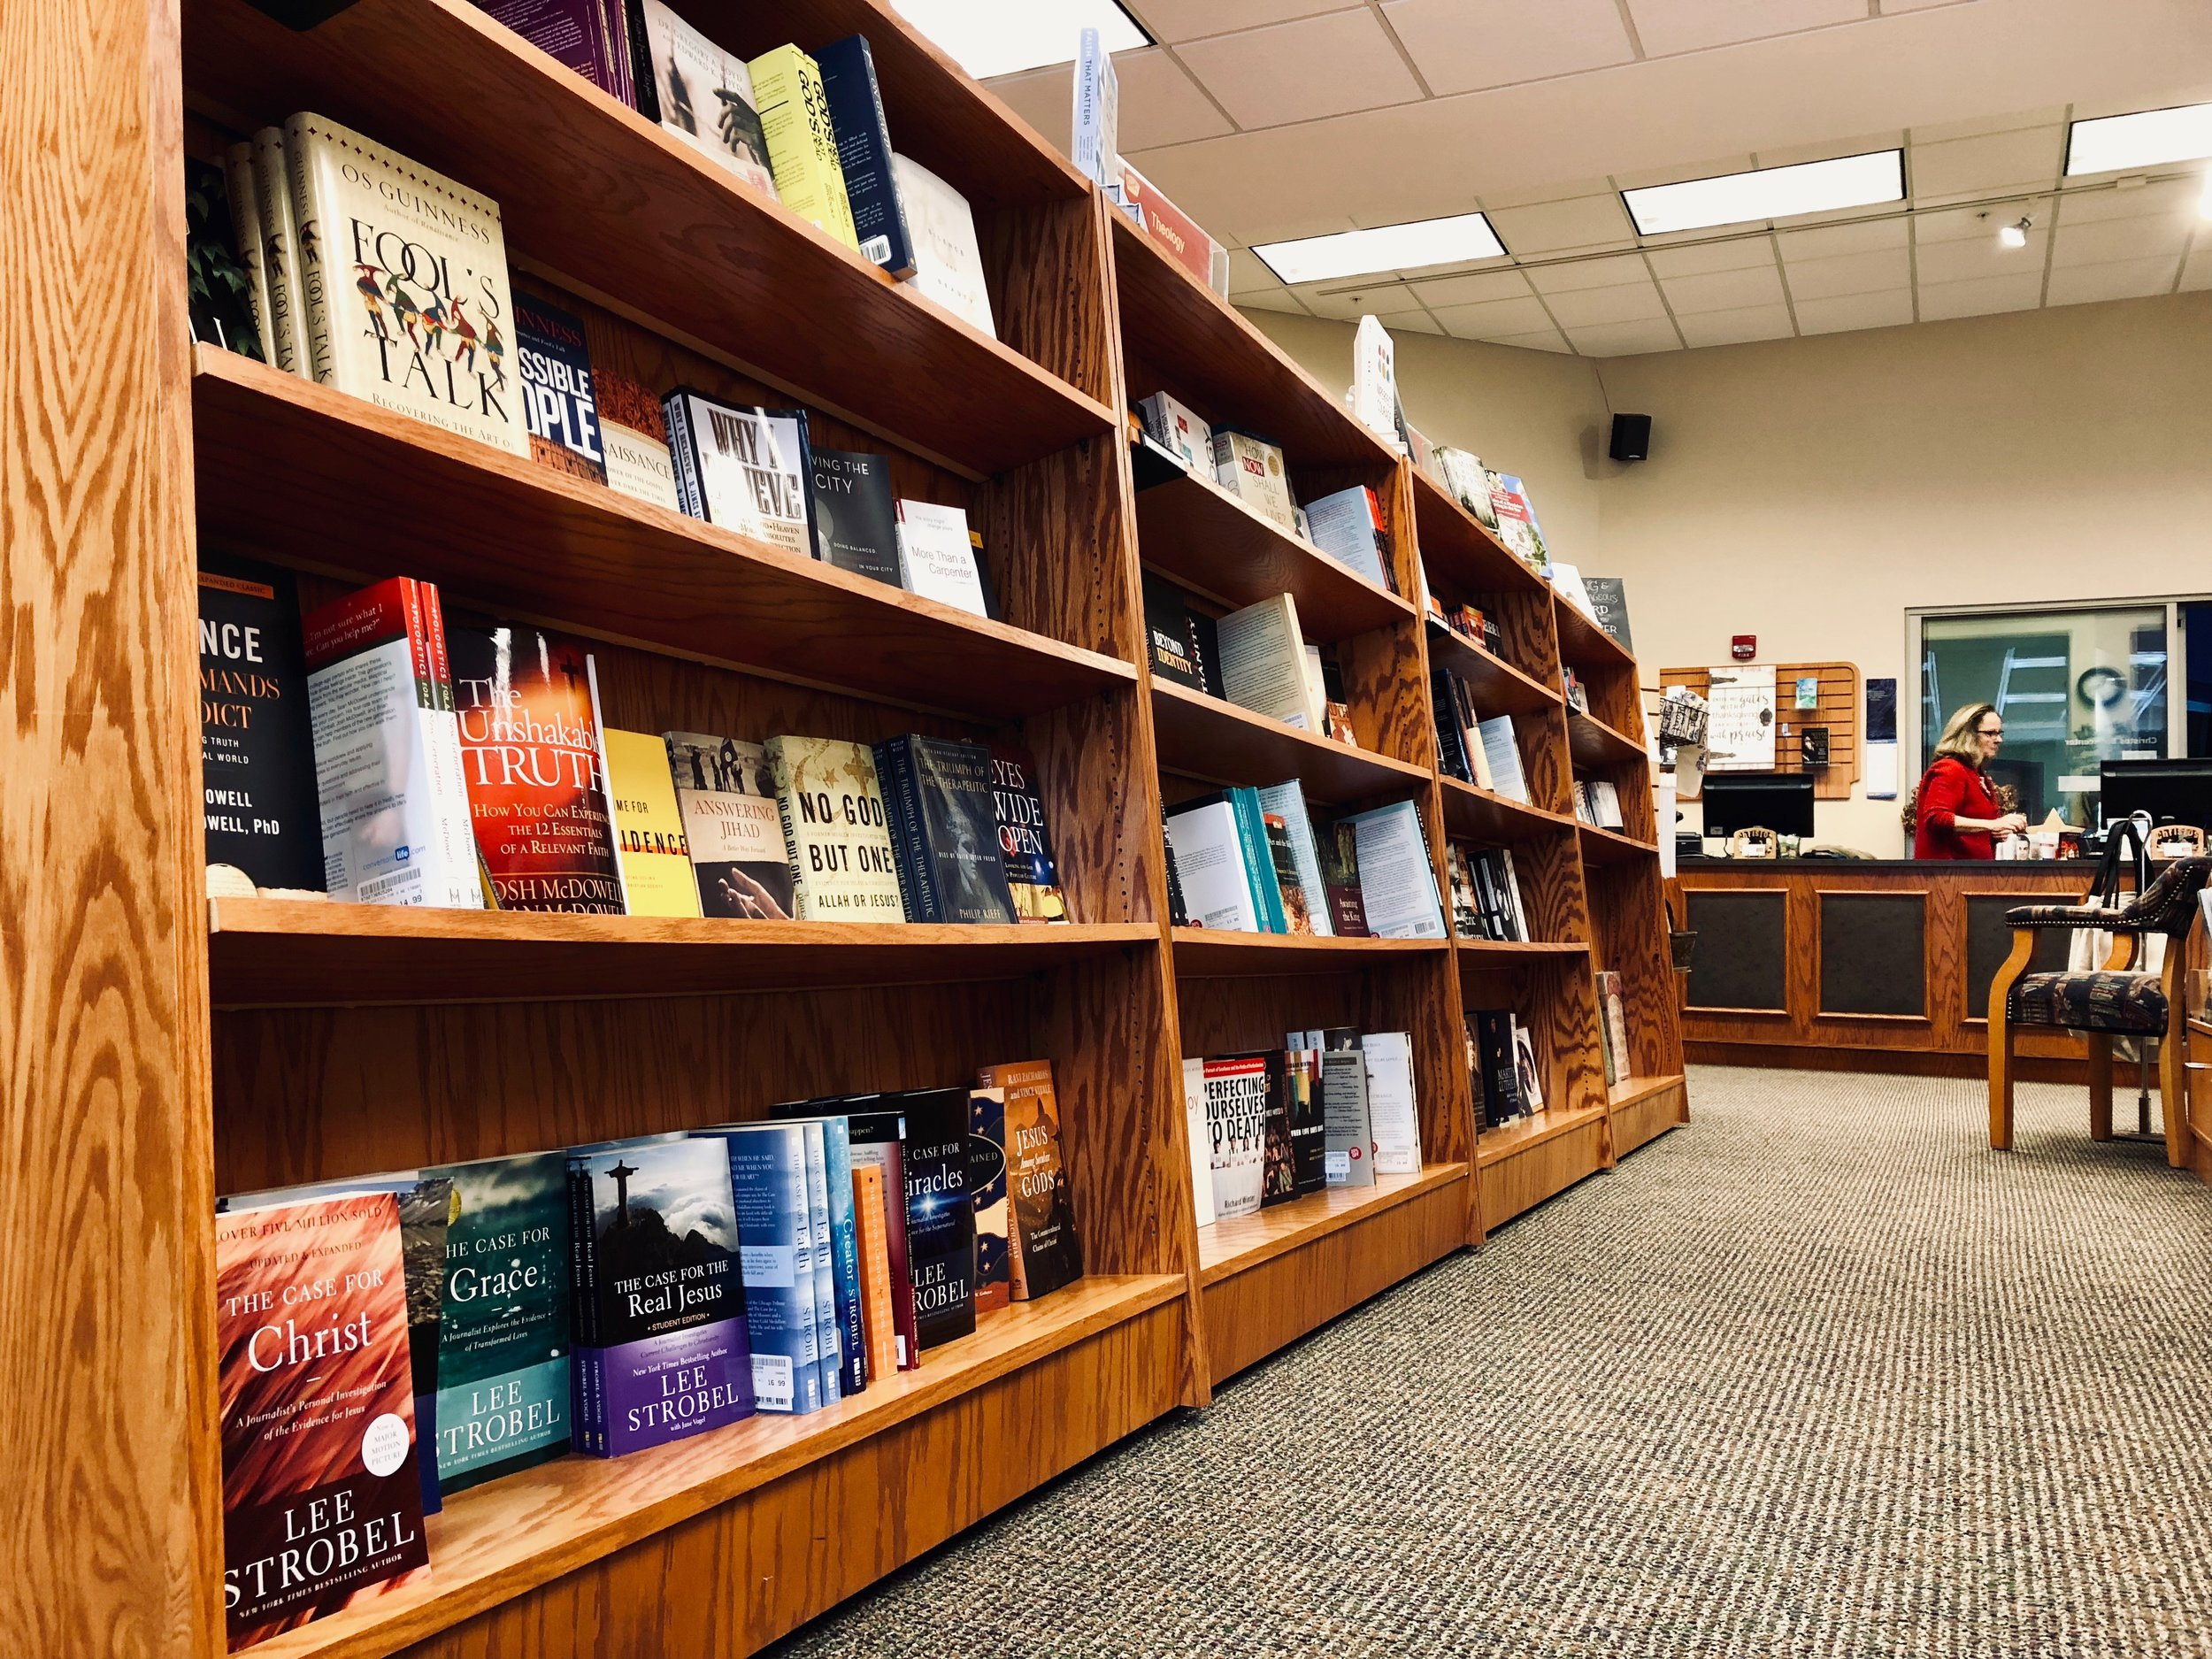 next-chapter-ministries-christos-bookcenter-shelves-autumn-ridge-church.JPG